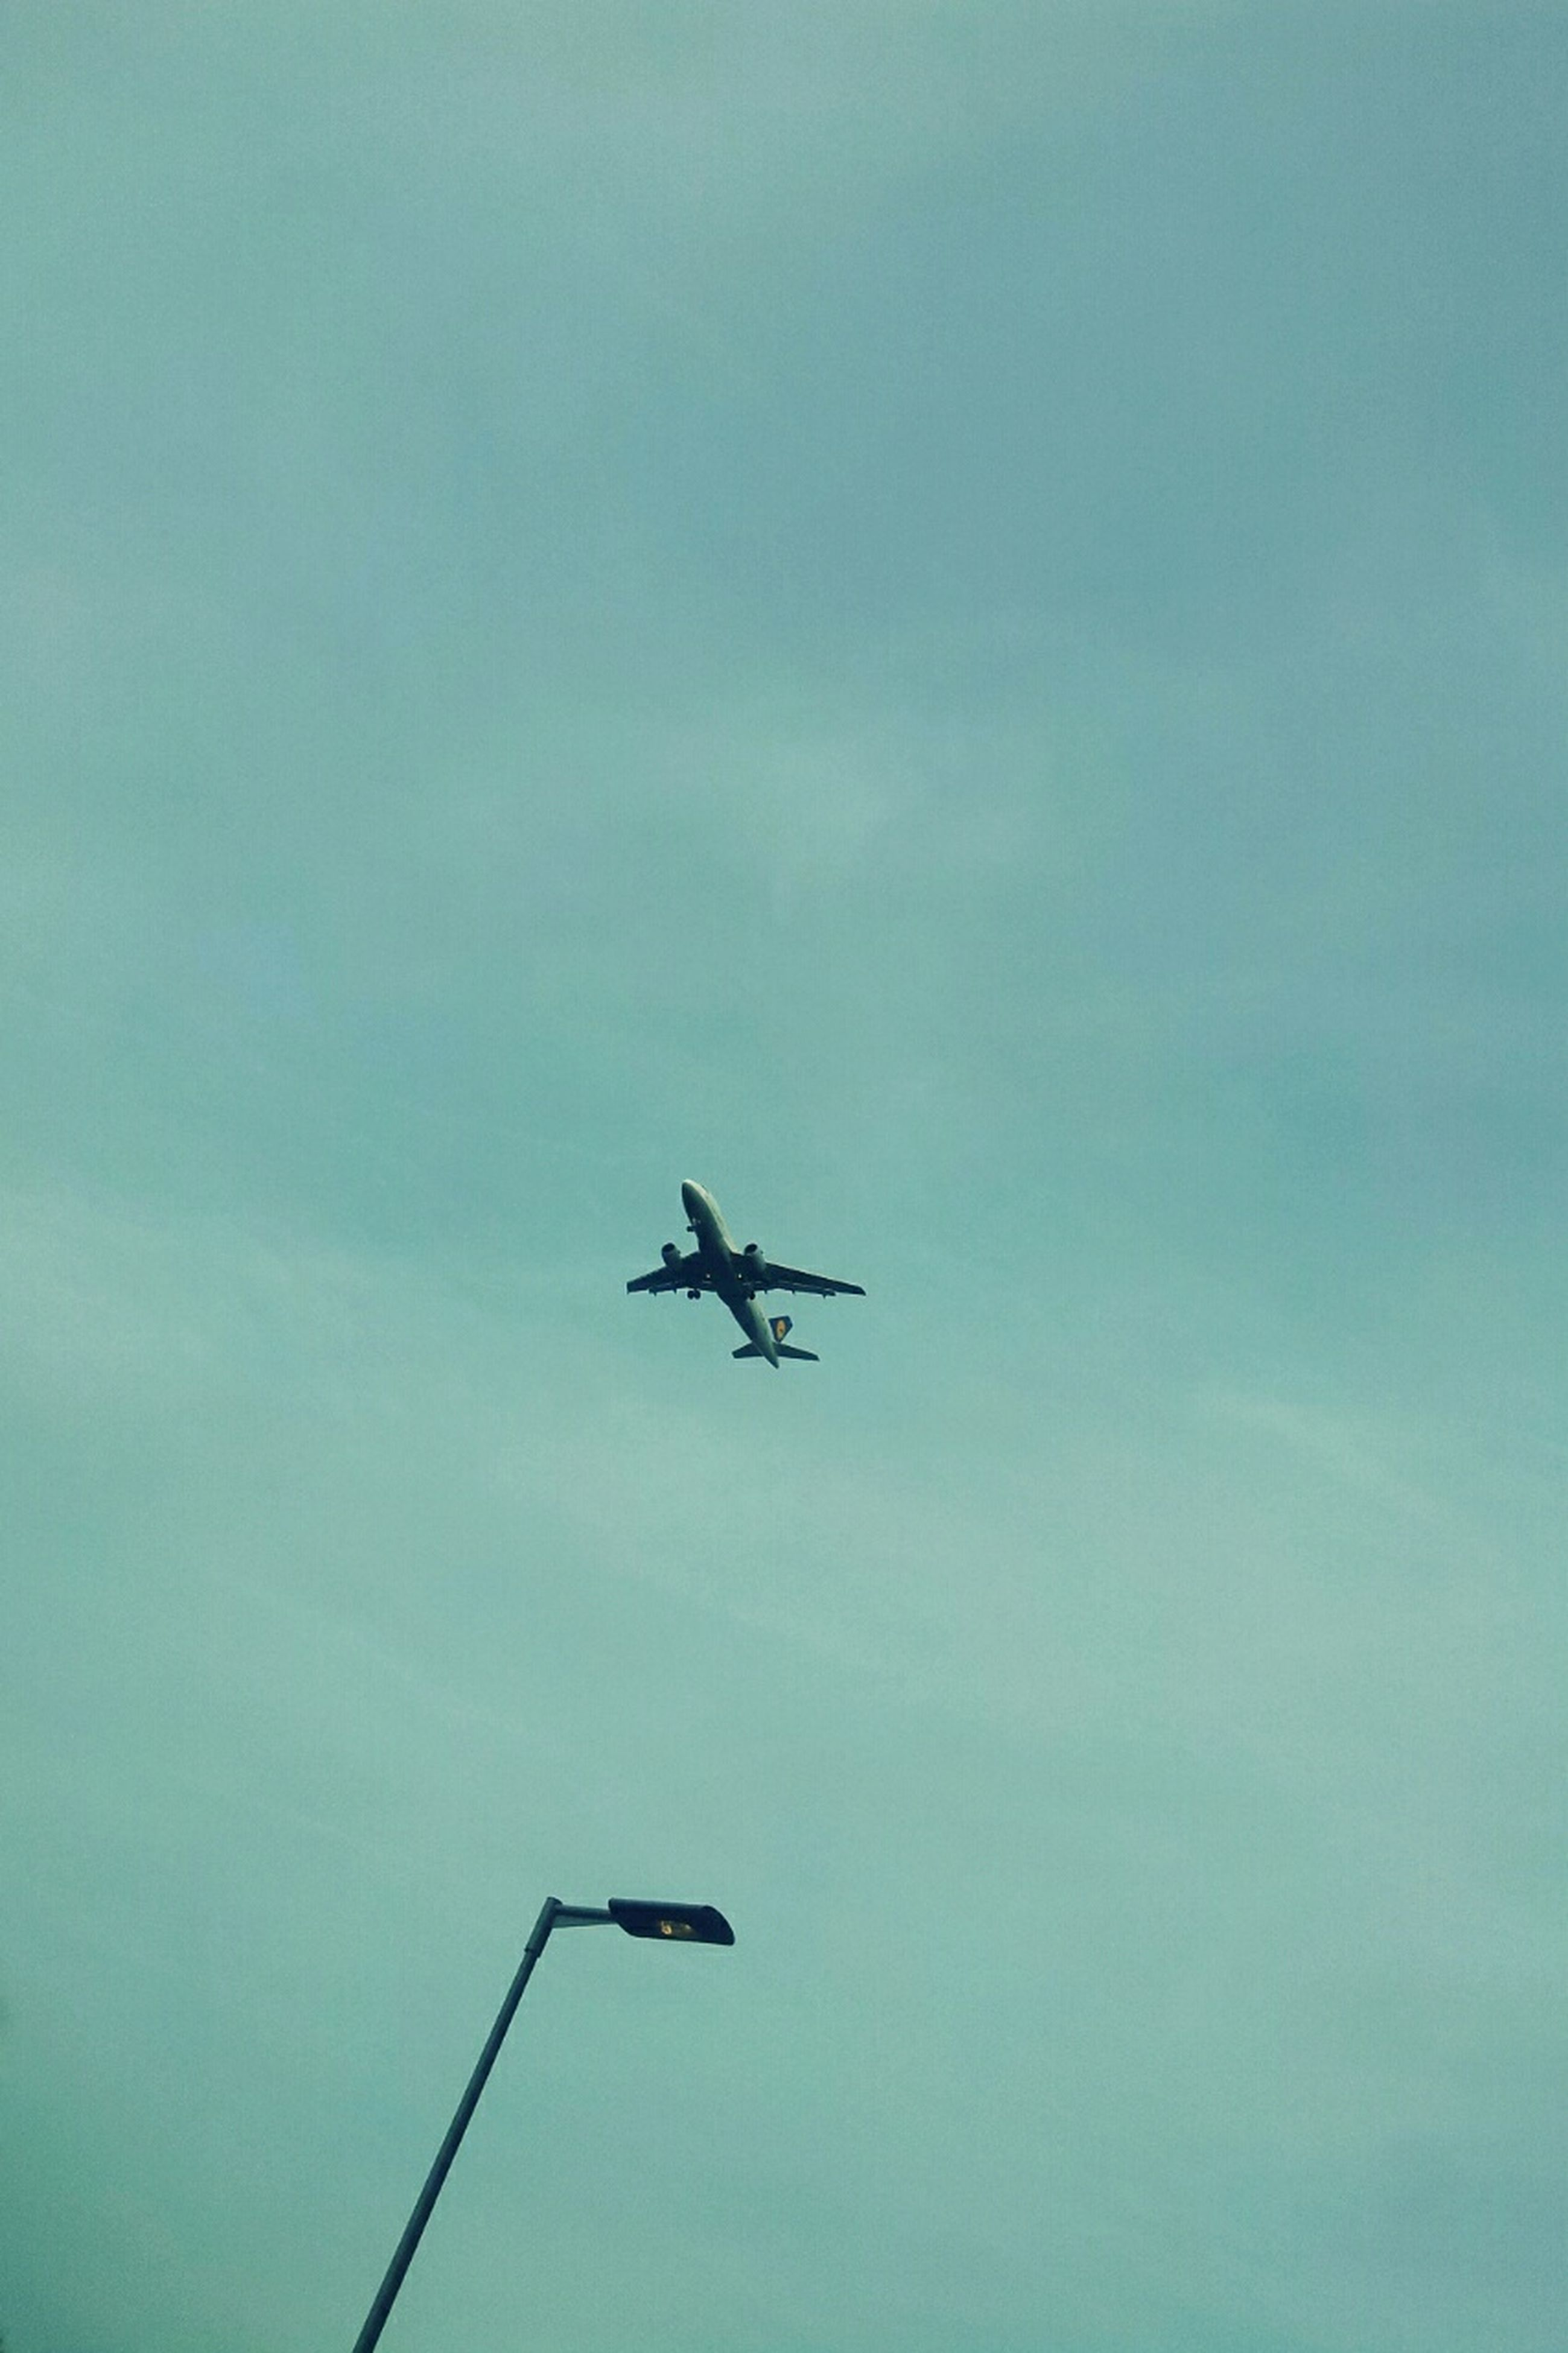 transportation, airplane, mode of transport, air vehicle, low angle view, flying, mid-air, sky, on the move, journey, travel, blue, copy space, public transportation, day, outdoors, commercial airplane, cloud - sky, helicopter, silhouette